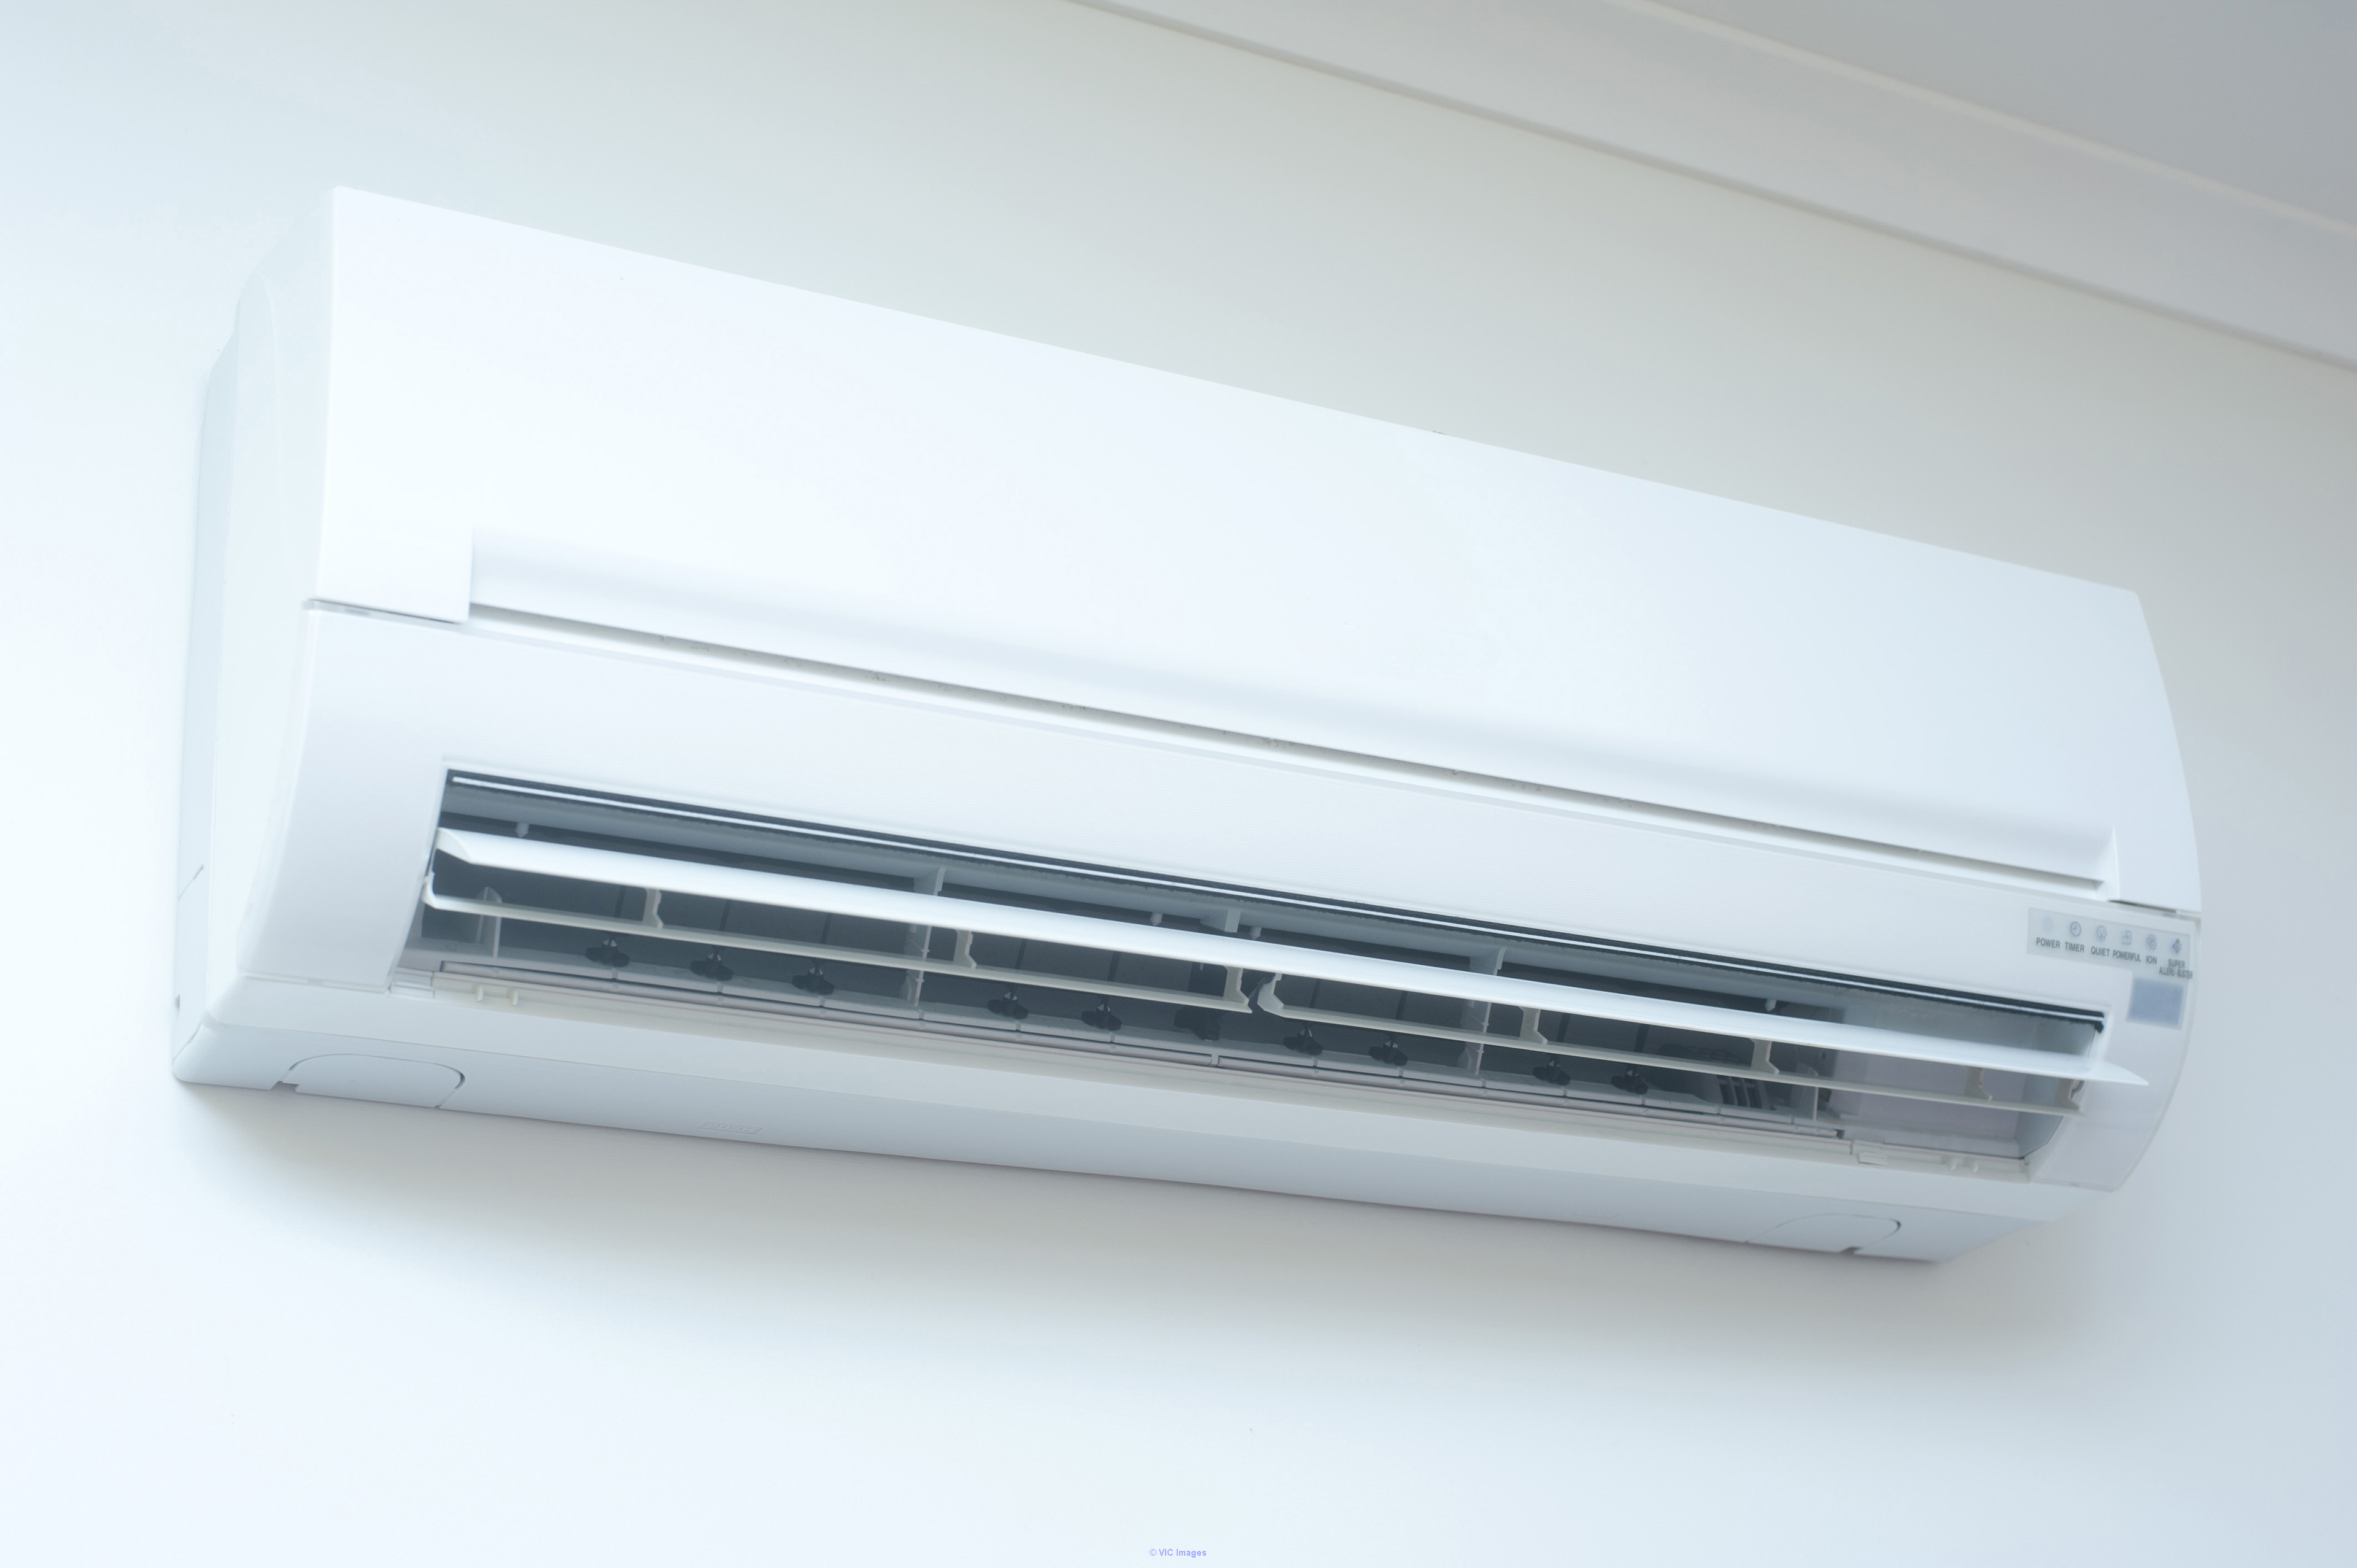 AC Sales and Service in Bangalore Ottawa, Ontario, Canada Classifieds